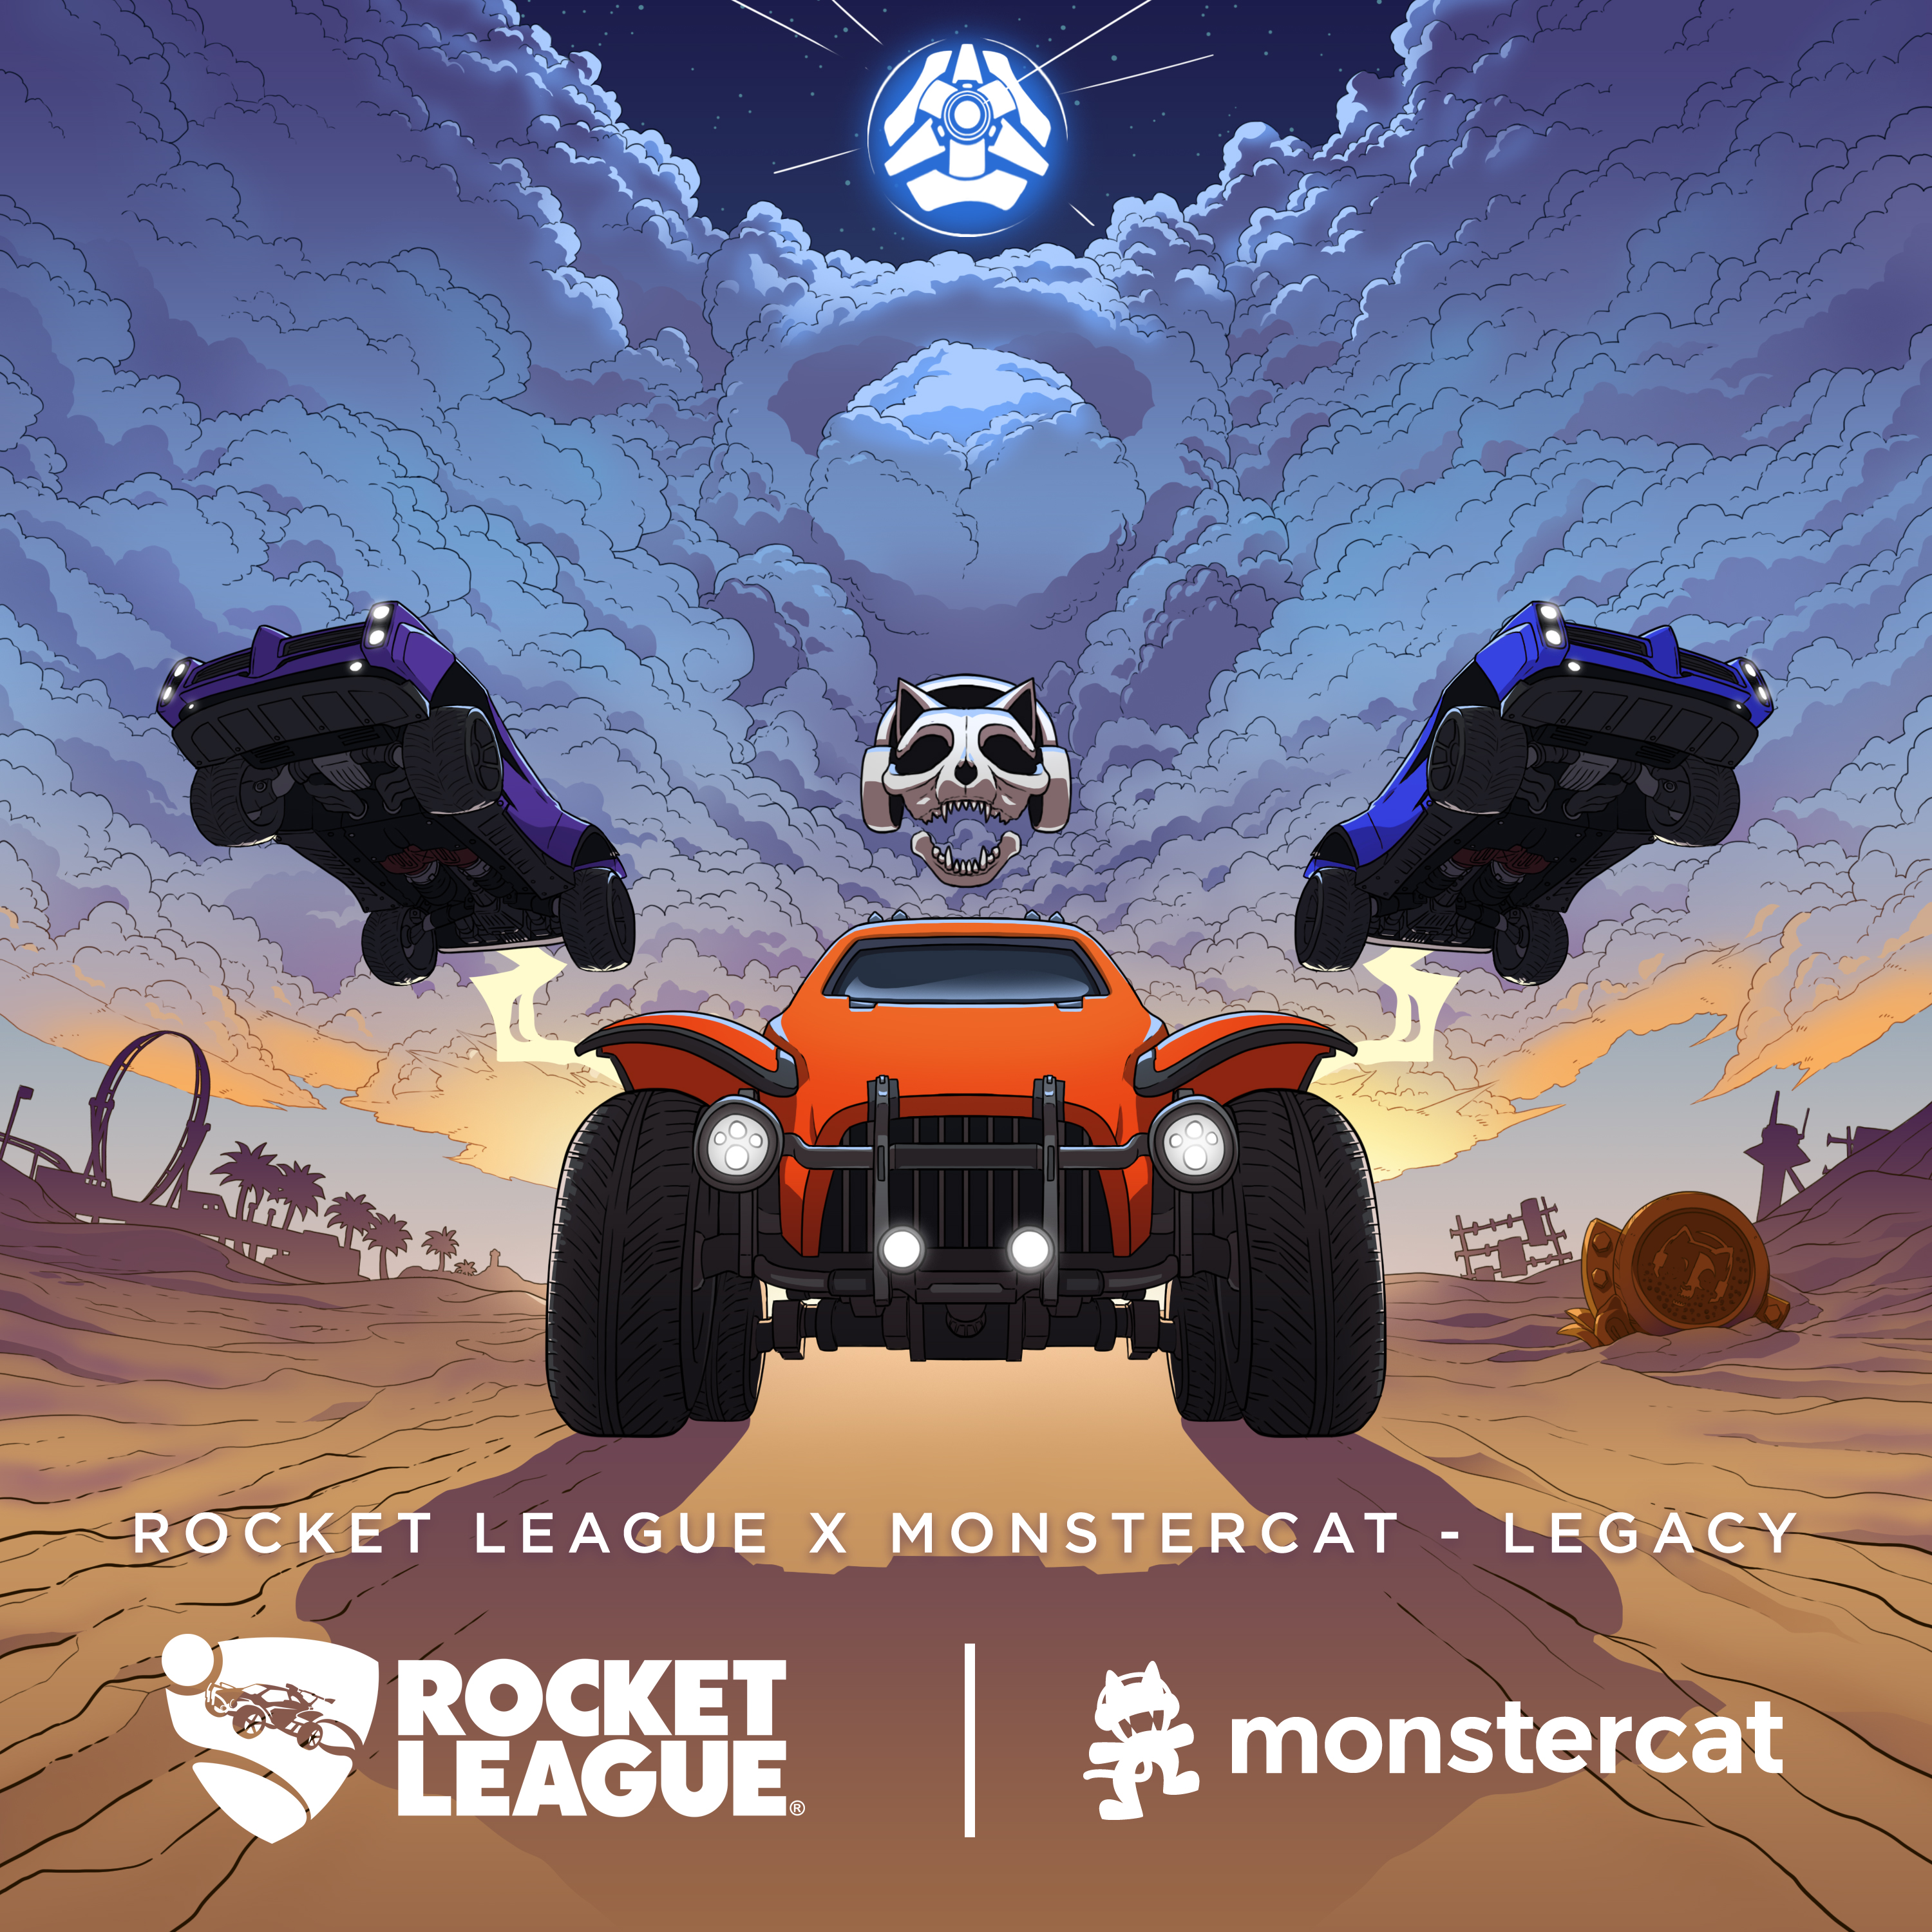 Rocket League x Monstercat - Legacy